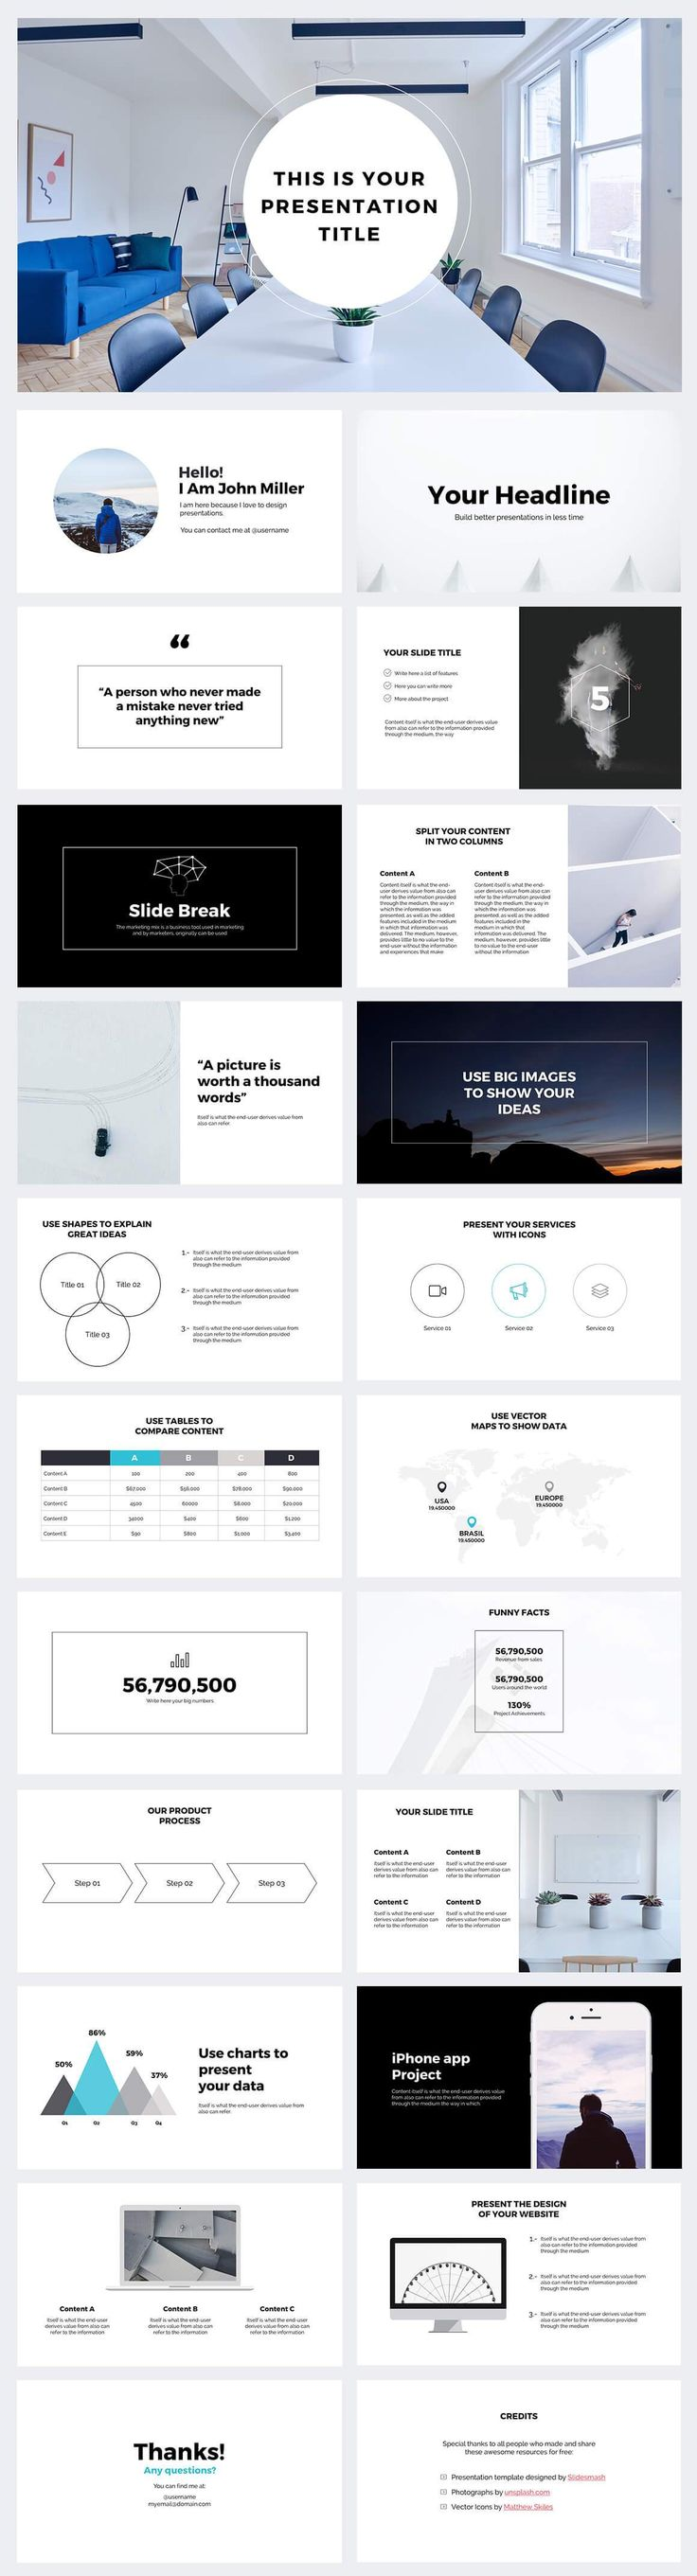 7 best free powerpoint templates on behance images on pinterest business strategy powerpoint template large preview toneelgroepblik Choice Image